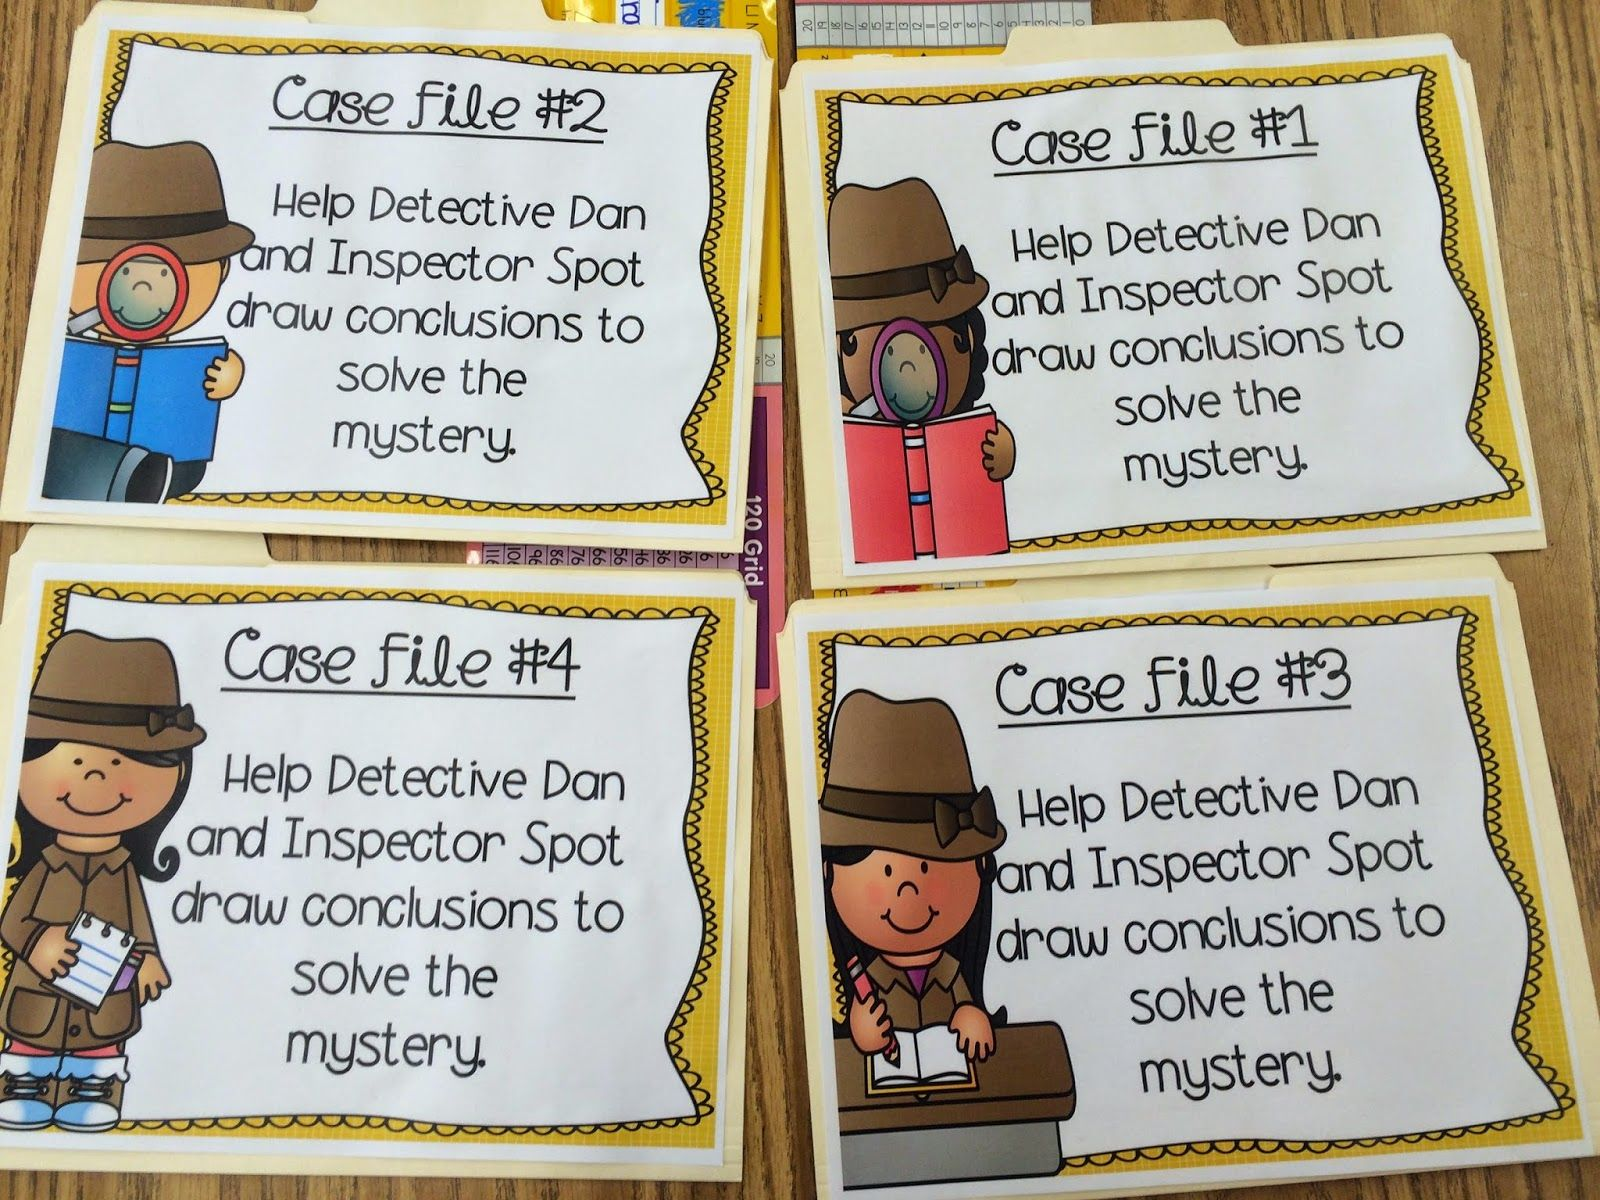 Five For Friday Drawing Conclusions 2nd Grade Activities Drawing Conclusions Activity [ 1200 x 1600 Pixel ]